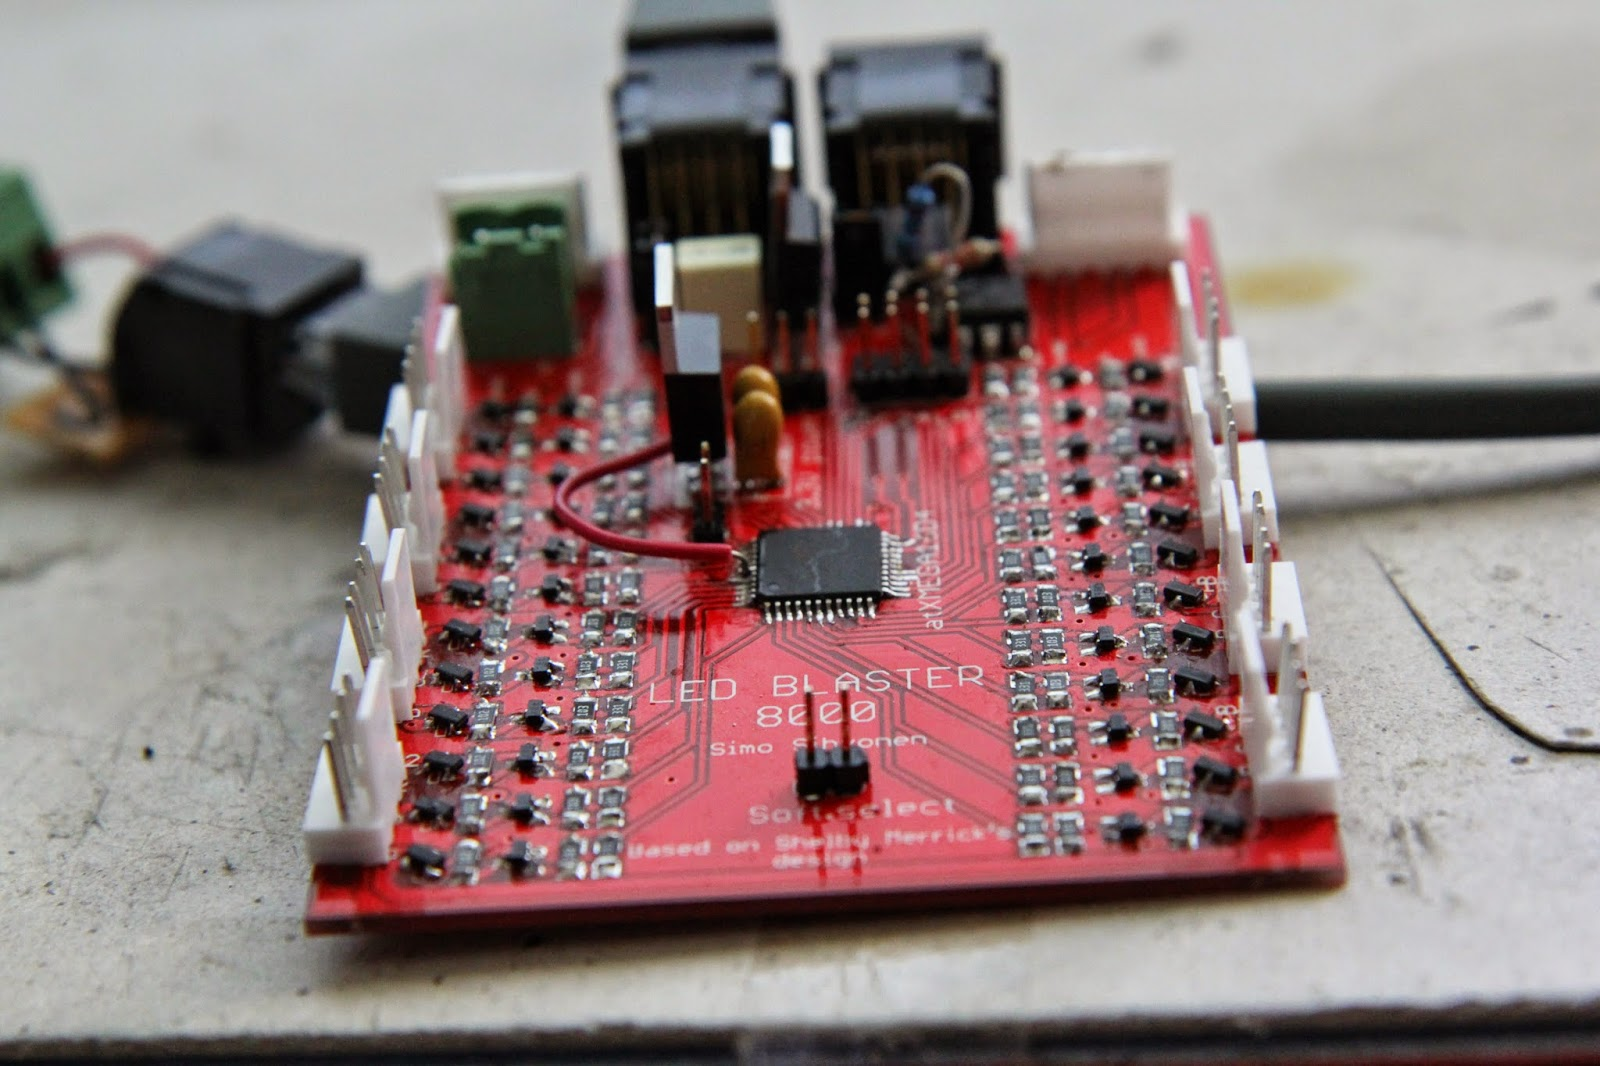 Mcmuffins Hobby Blog Project Ledblaster 8000 Futurlec The Electronic Components And Semiconductor Superstore Credited Merrick As Original Board Designer Cheers Mate Jumper On Bottom There Is Used To Change Between Dmx Protocol Generic Serial